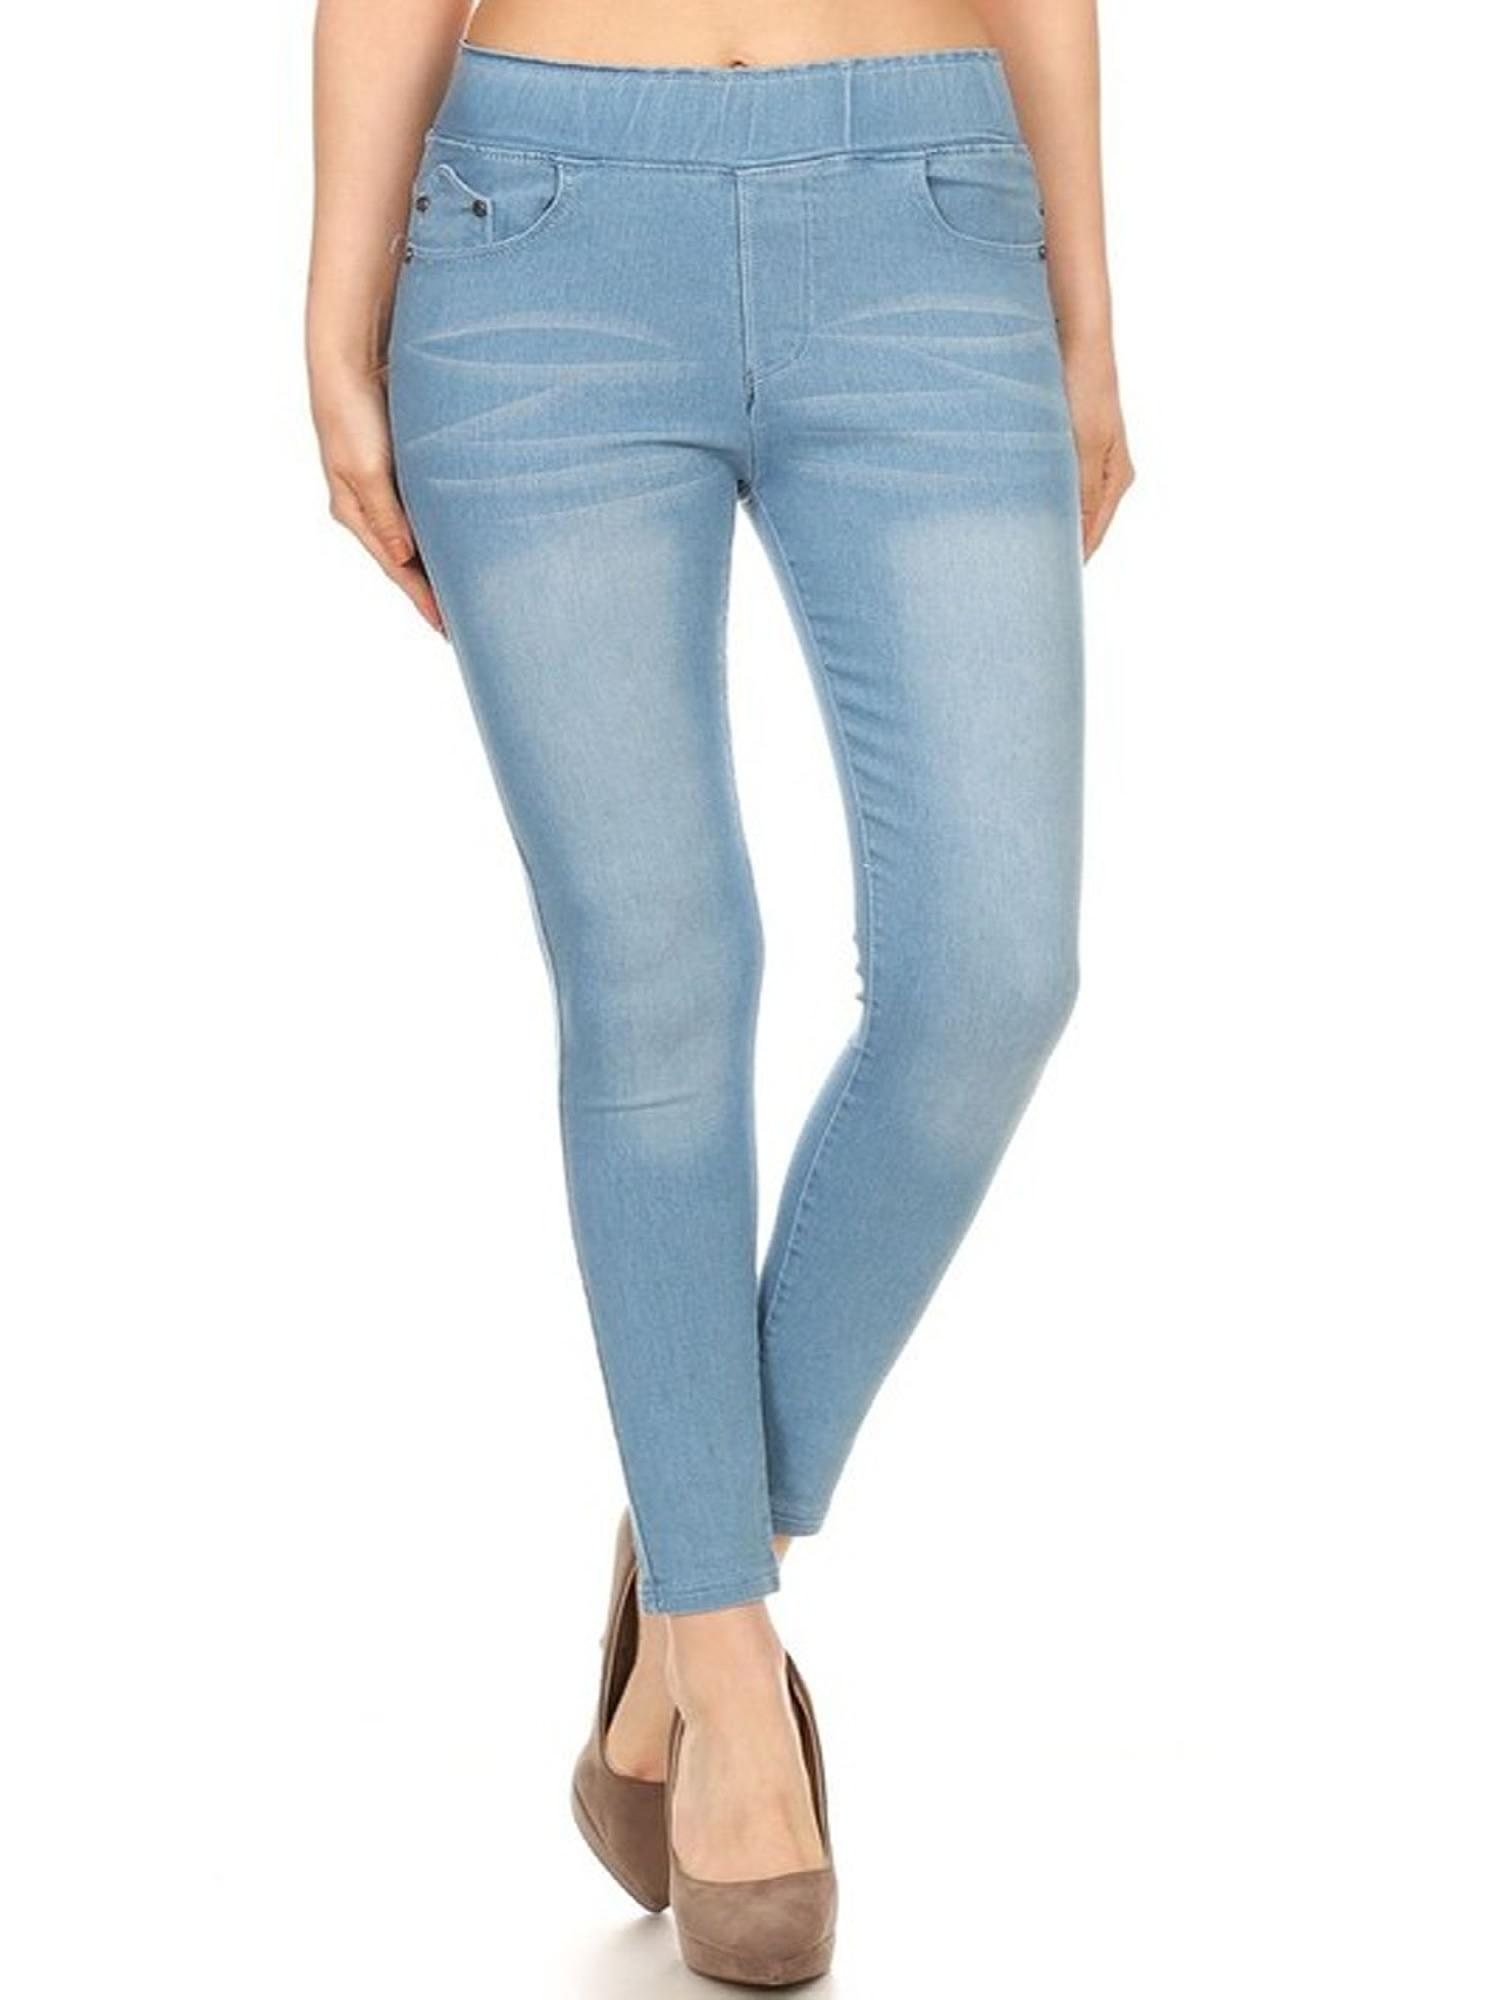 NEW MOA Women's Casual Soft Solid High Waist Stretch Denim Jegging Pants